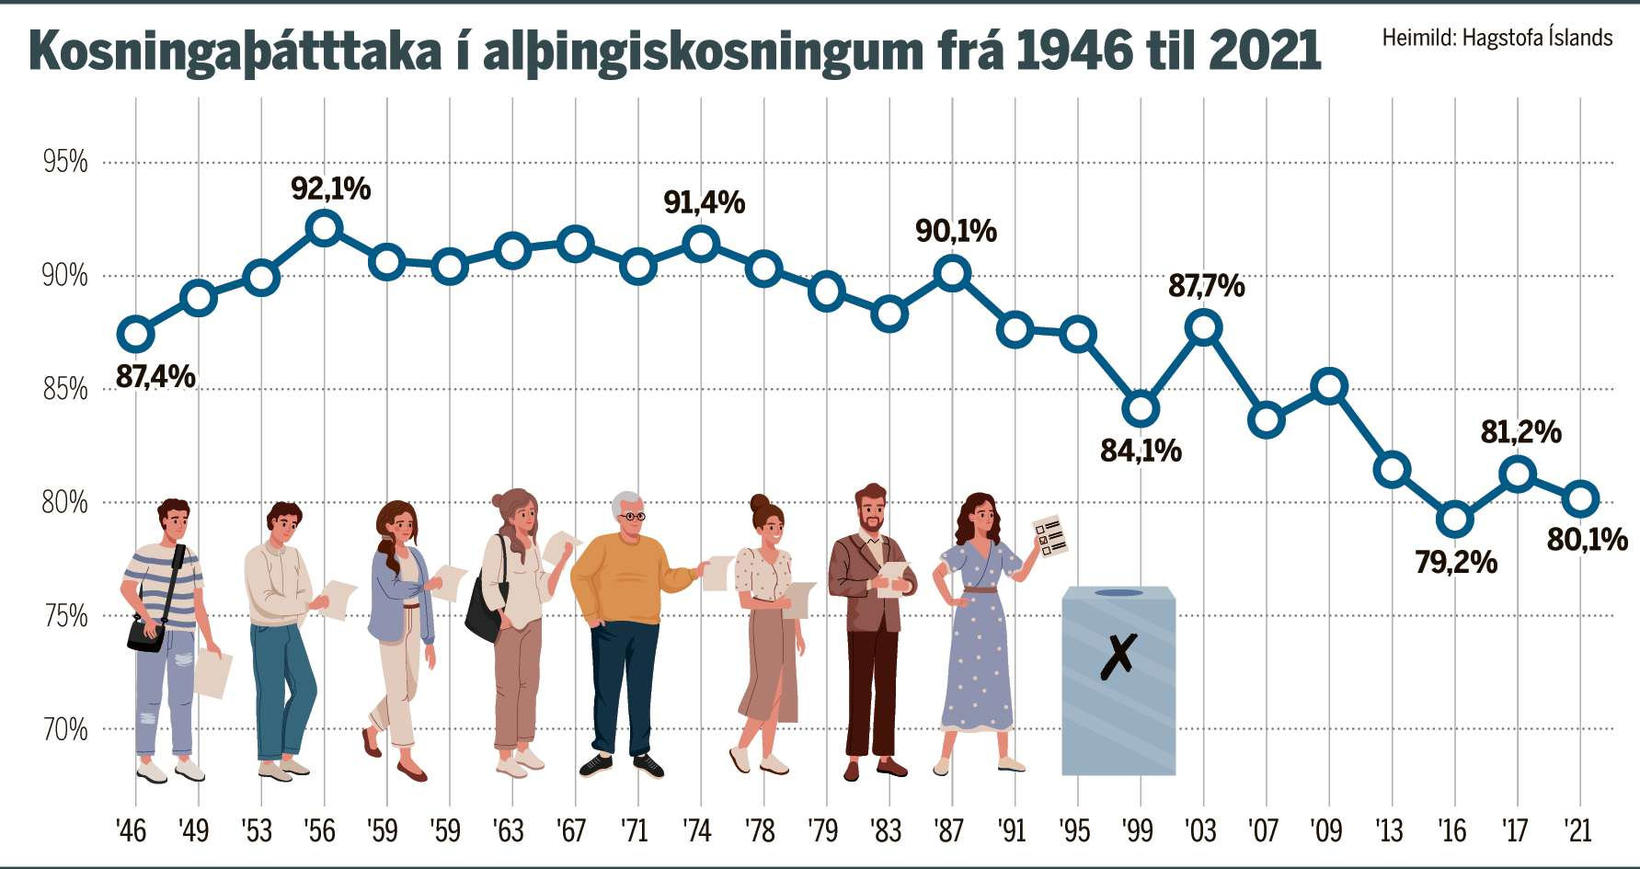 Voter turnout in parliamentary elections in Iceland since 1946.